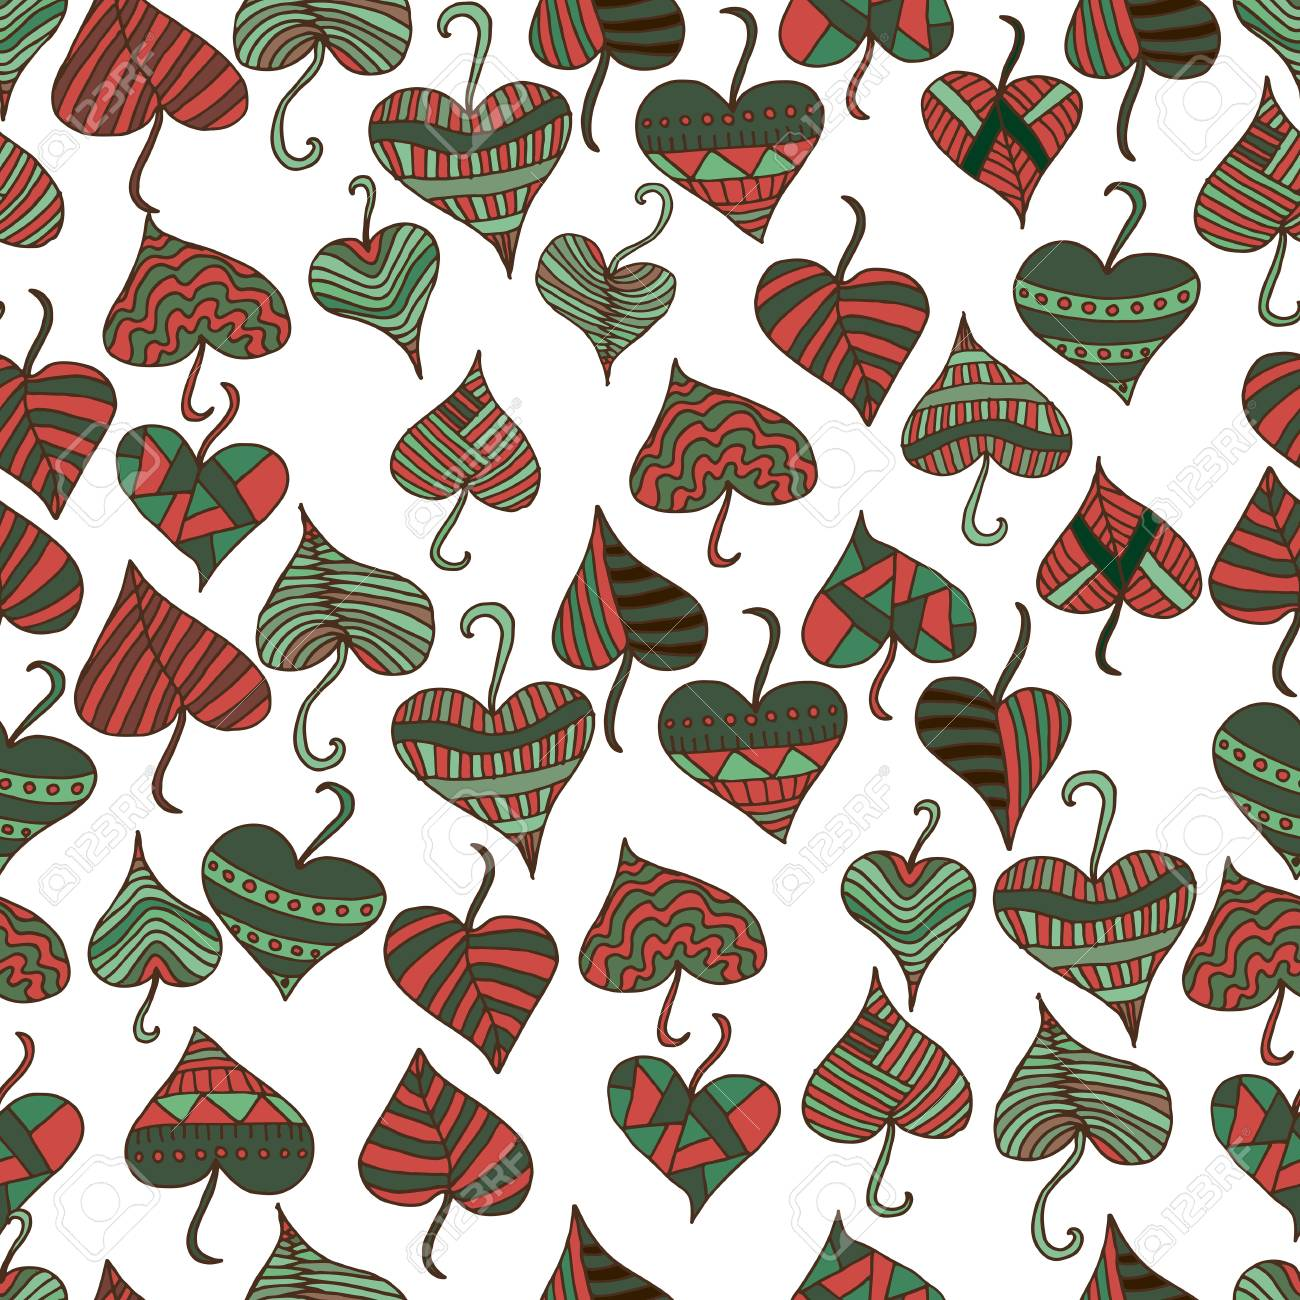 Decorative Patterned Leaves In A Red Green Brown Color On White Background